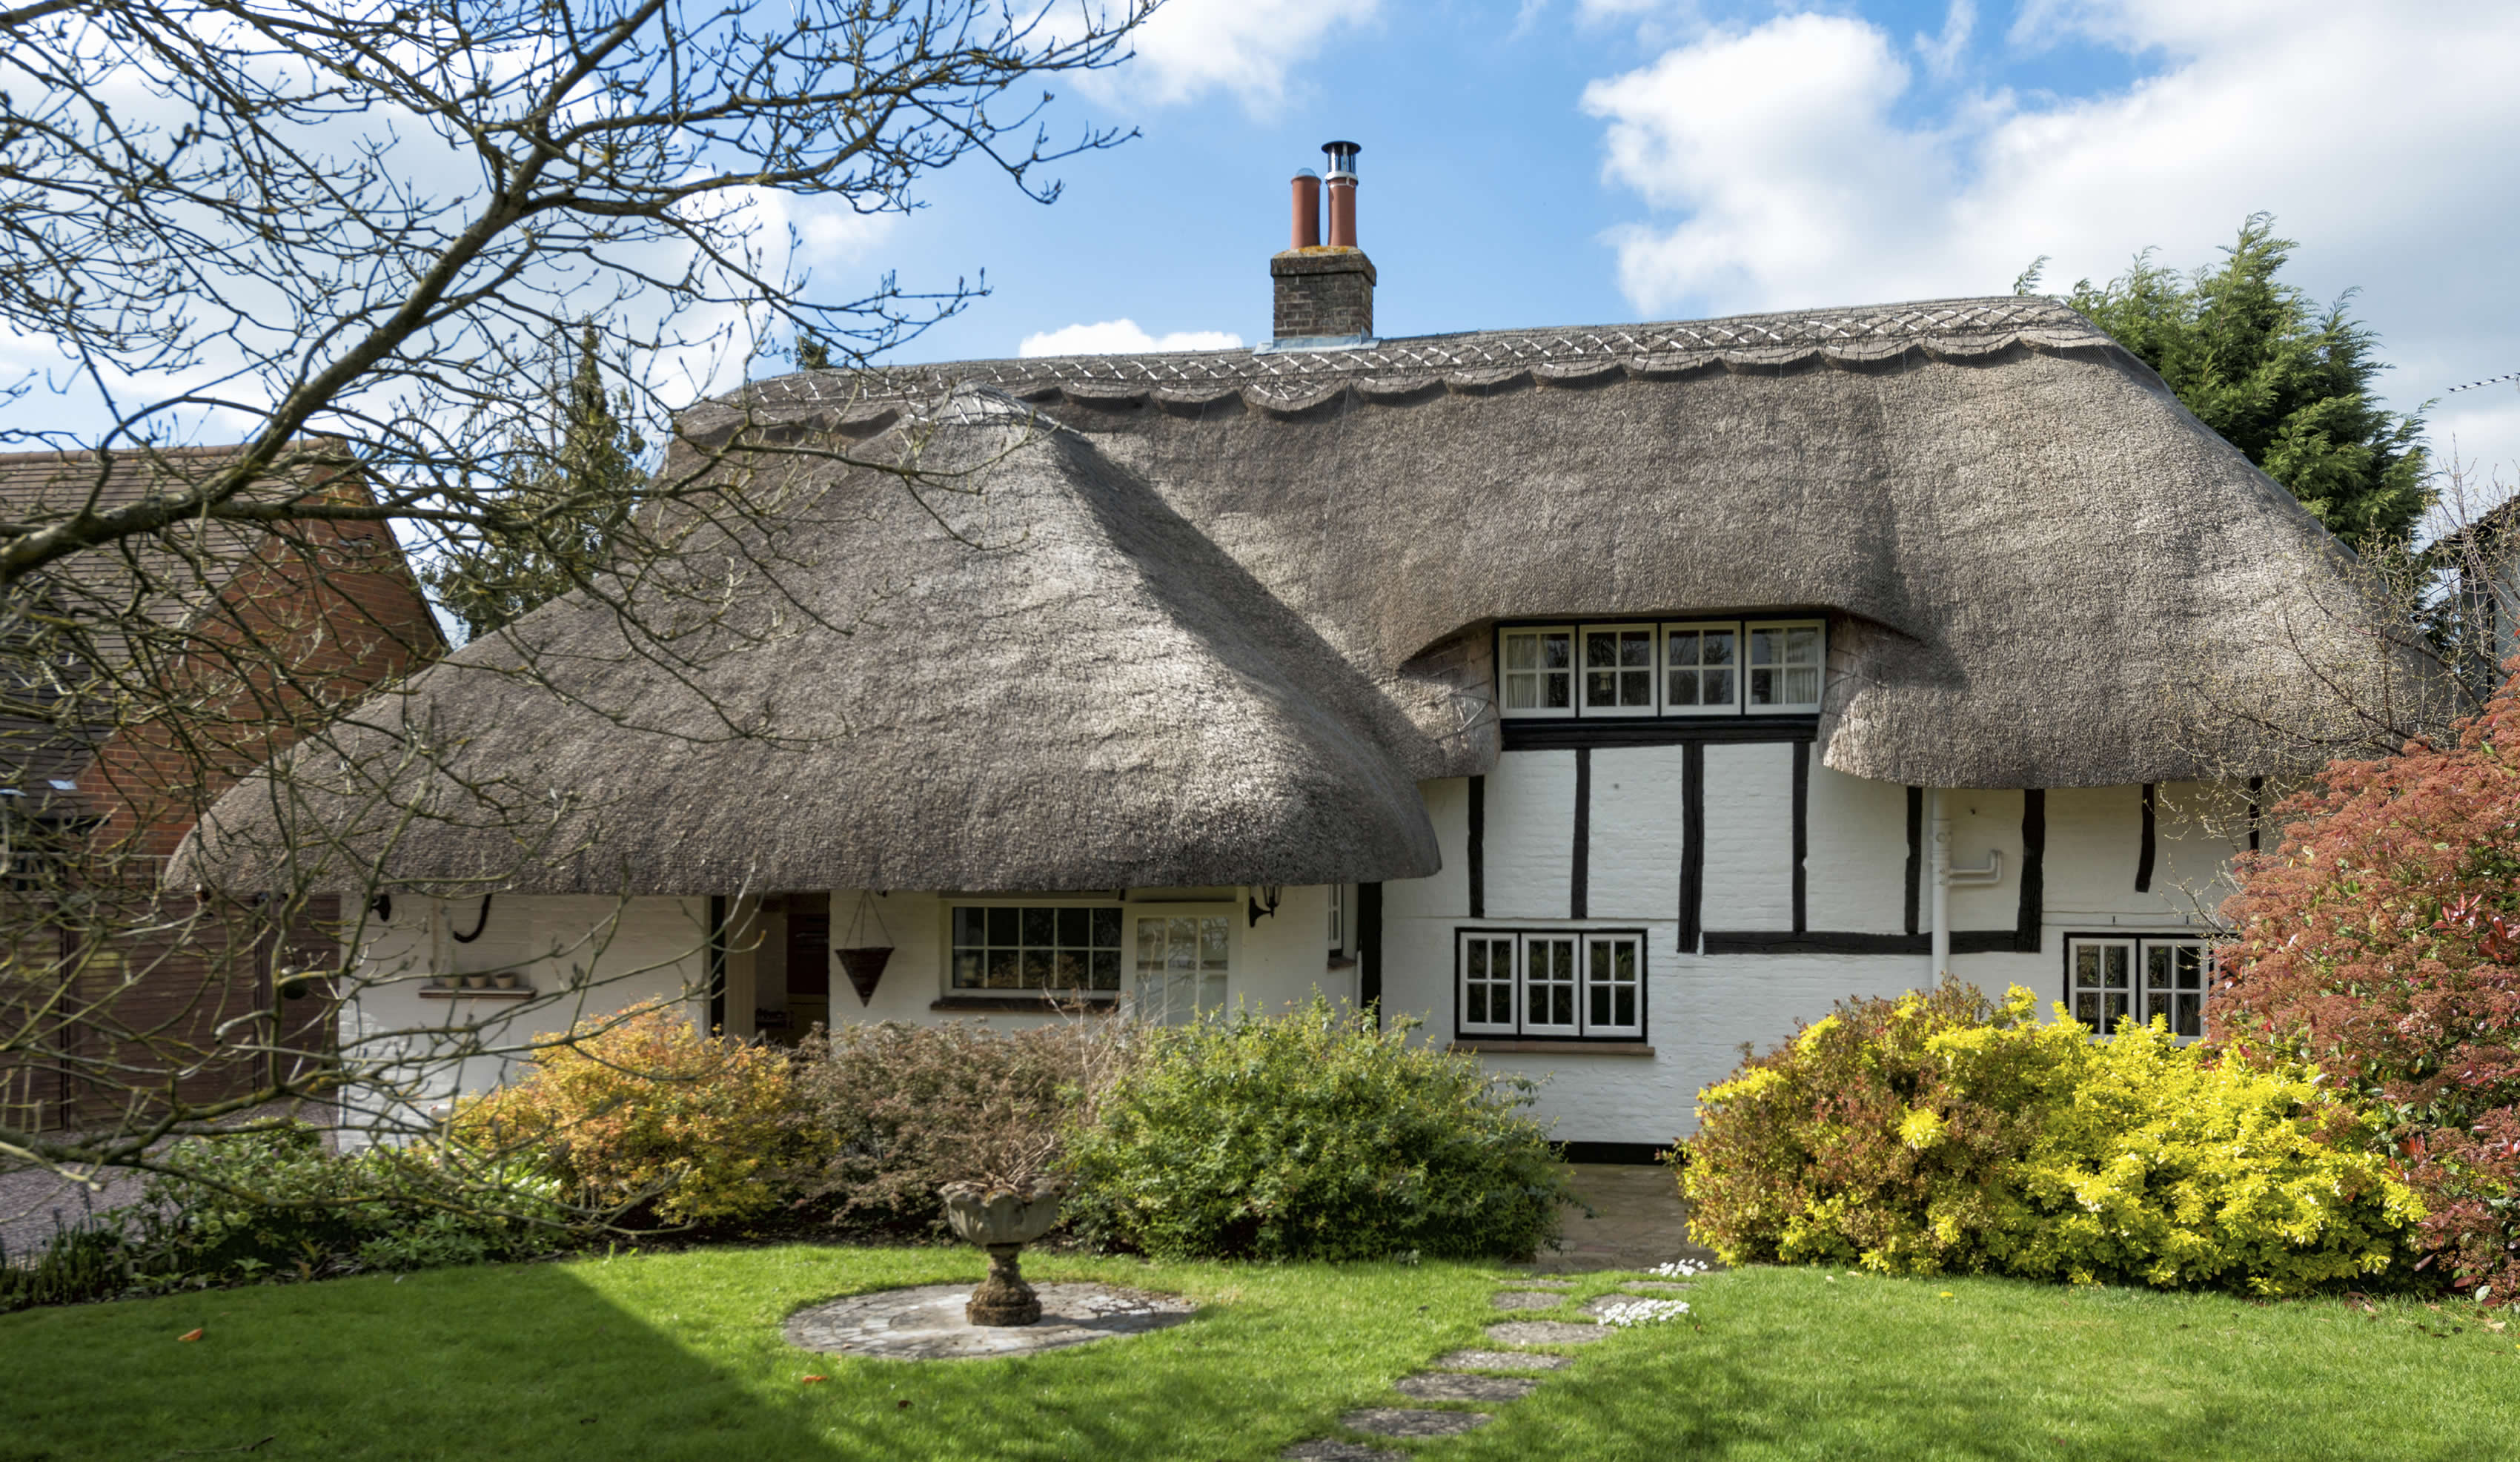 Thatched Roof Insurance – What you Need to Know